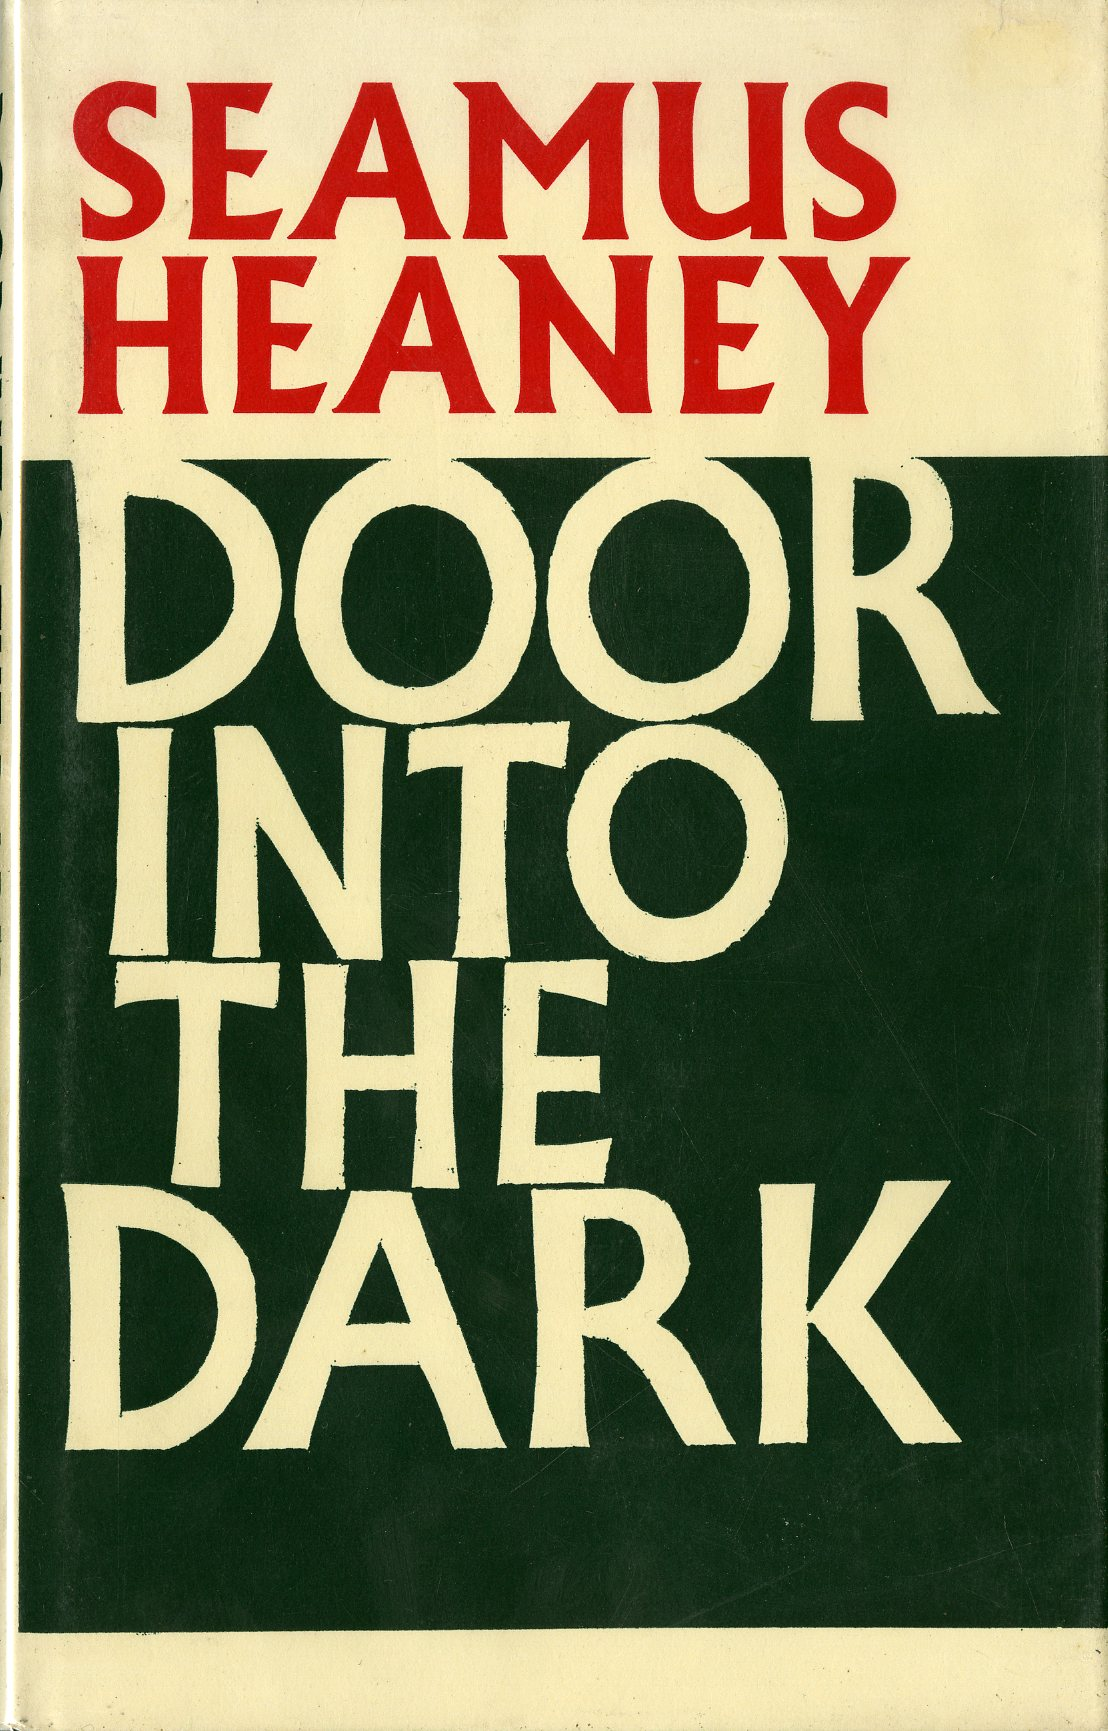 Lot 209 - With Original Holograph Passage by the Author Heaney (Seamus) Door Into the Dark, 8vo, N.Y.